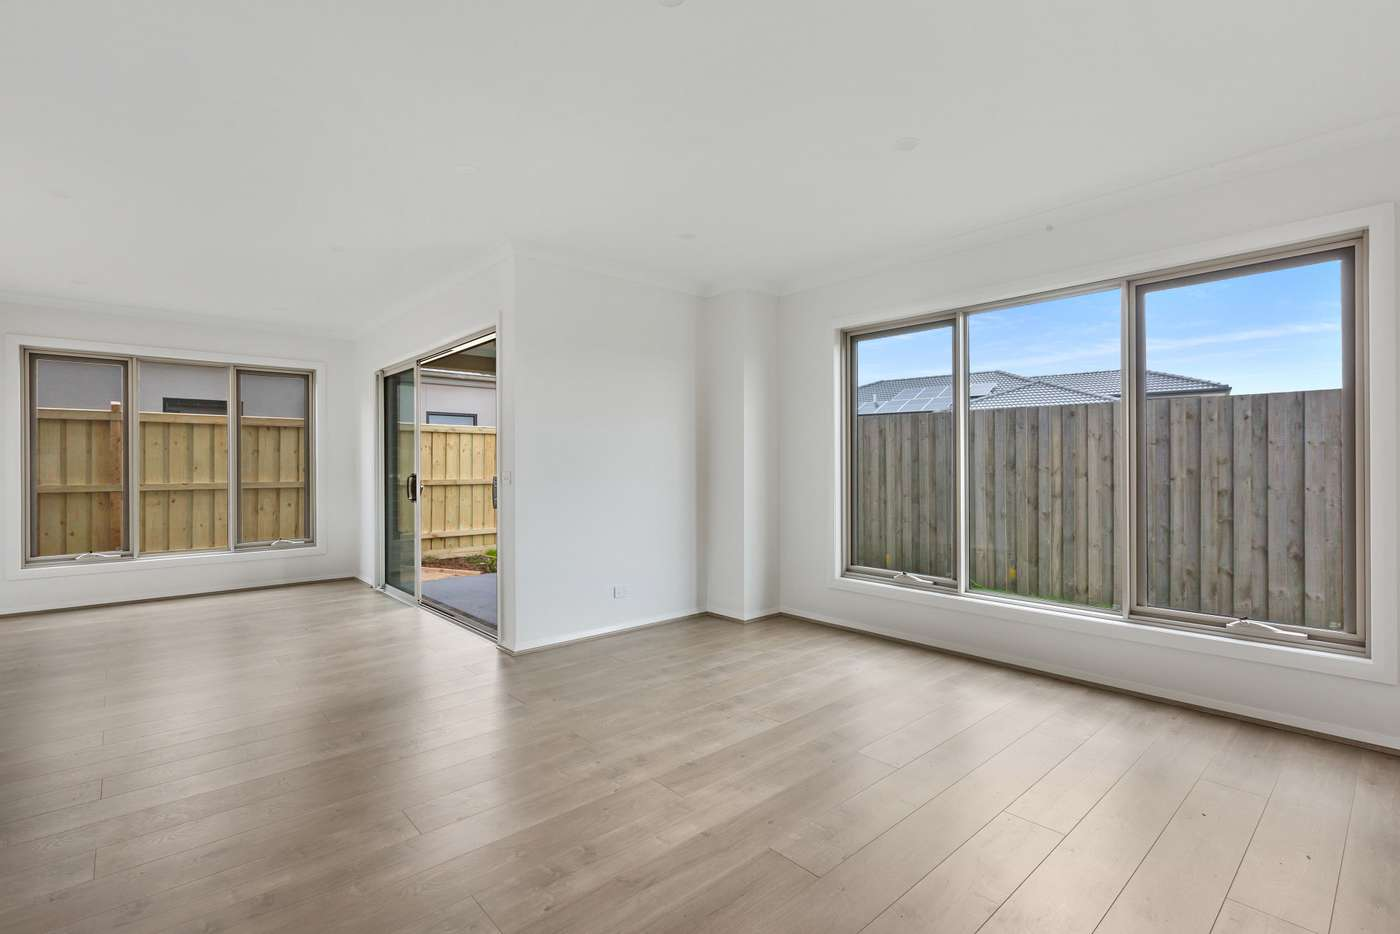 Fifth view of Homely house listing, 1 Abacus Lane, Cranbourne South VIC 3977